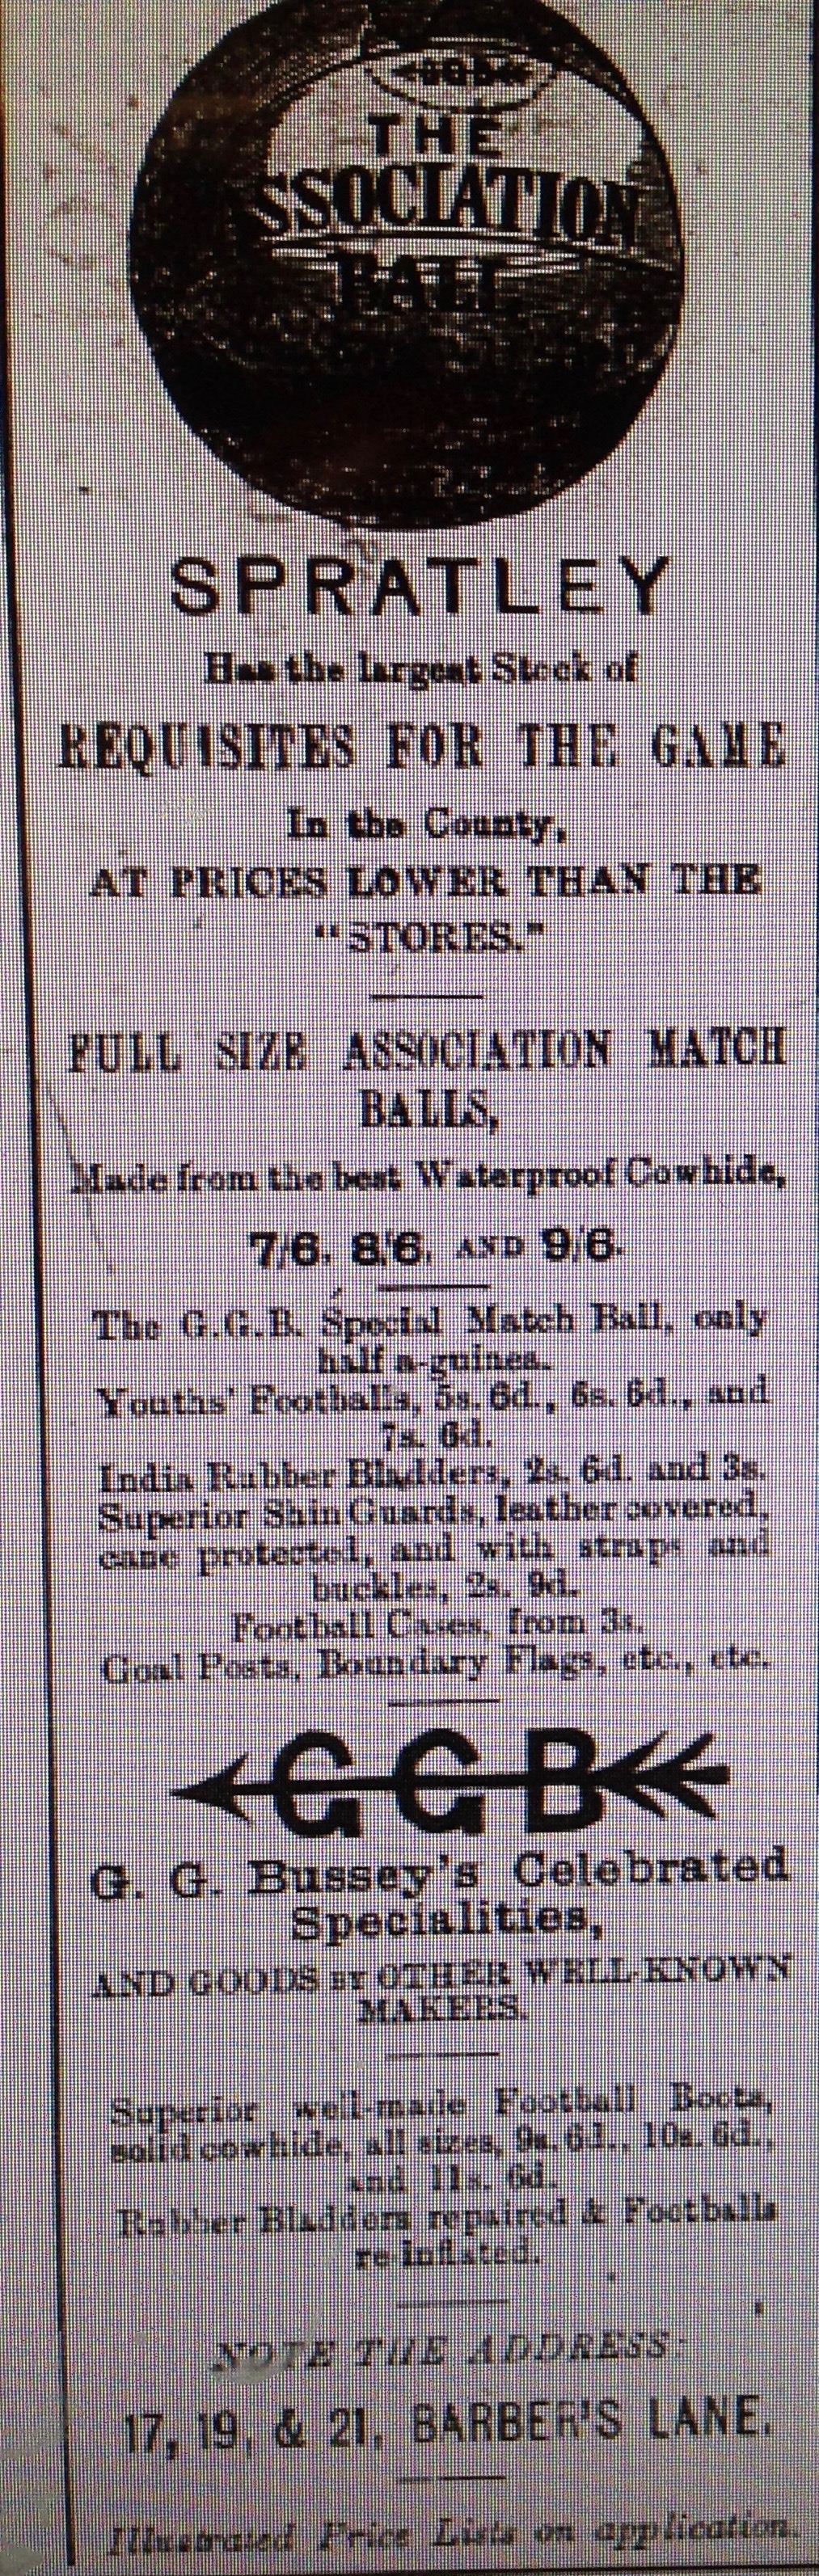 Spratley's advert 1886